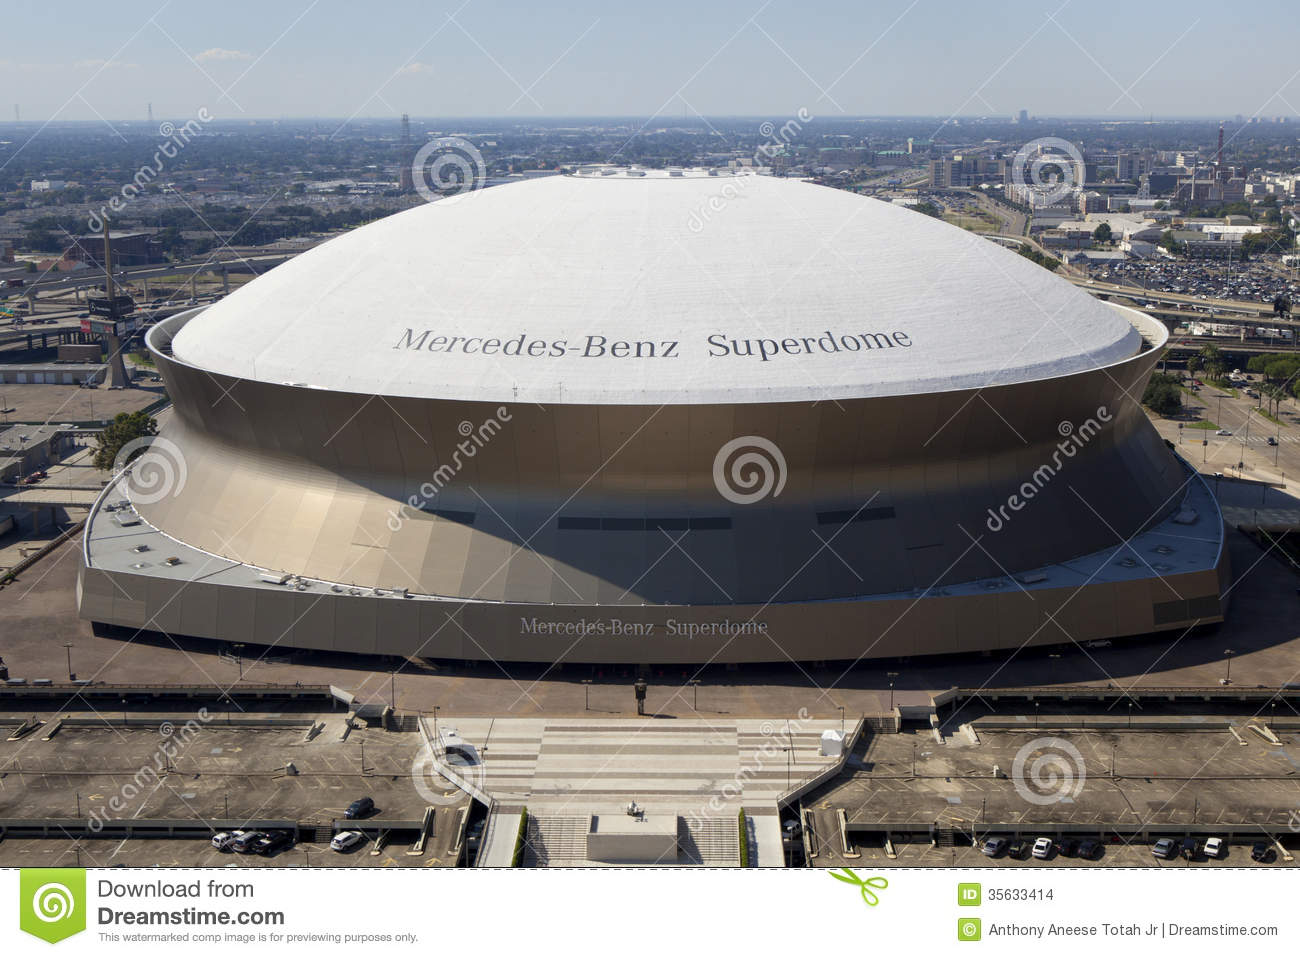 Superdome new orleans louisiana editorial stock image for Mercedes benz superdome new orleans la